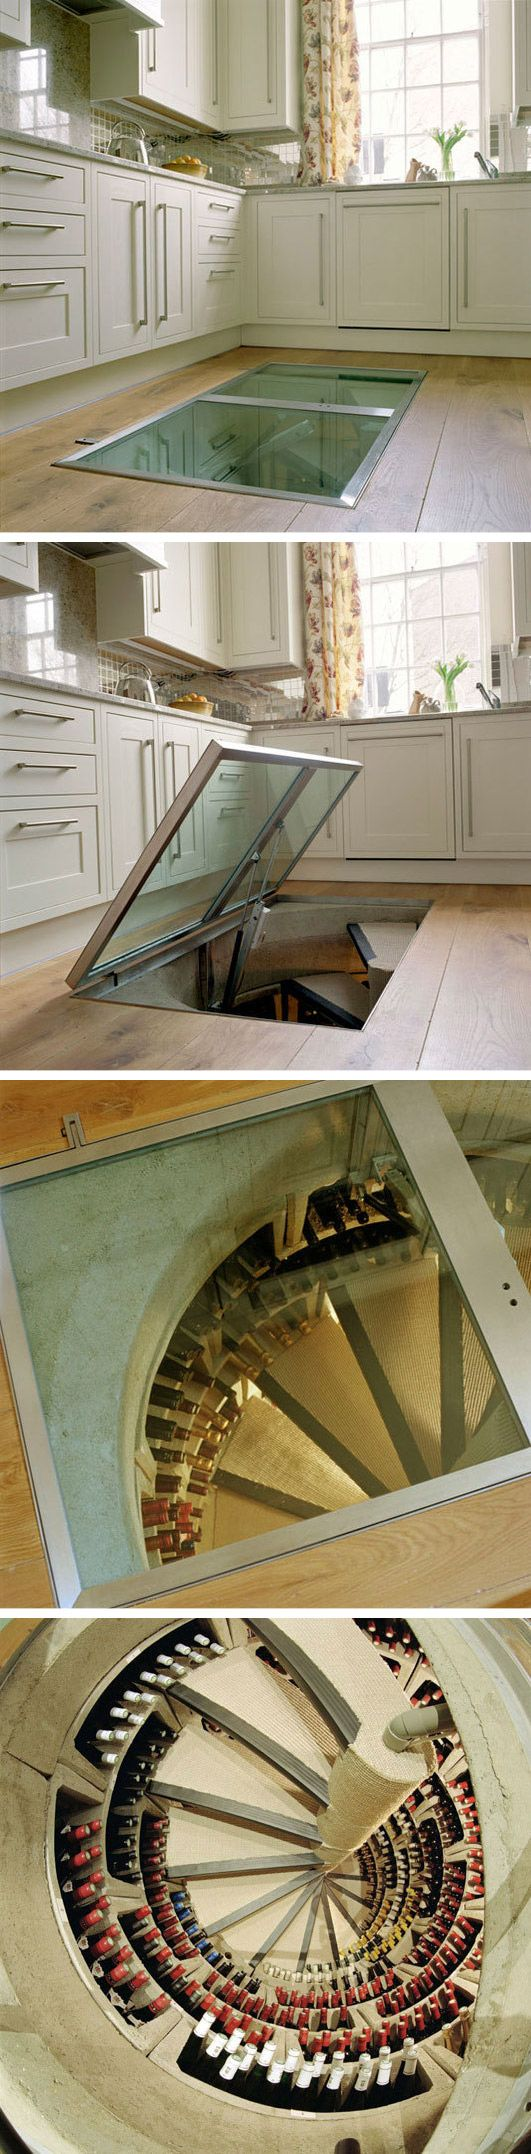 Wine Cellar Kitchen Floor Trapdoor In The Kitchen Floor Spiral Wine Cellars Be Cool Wine